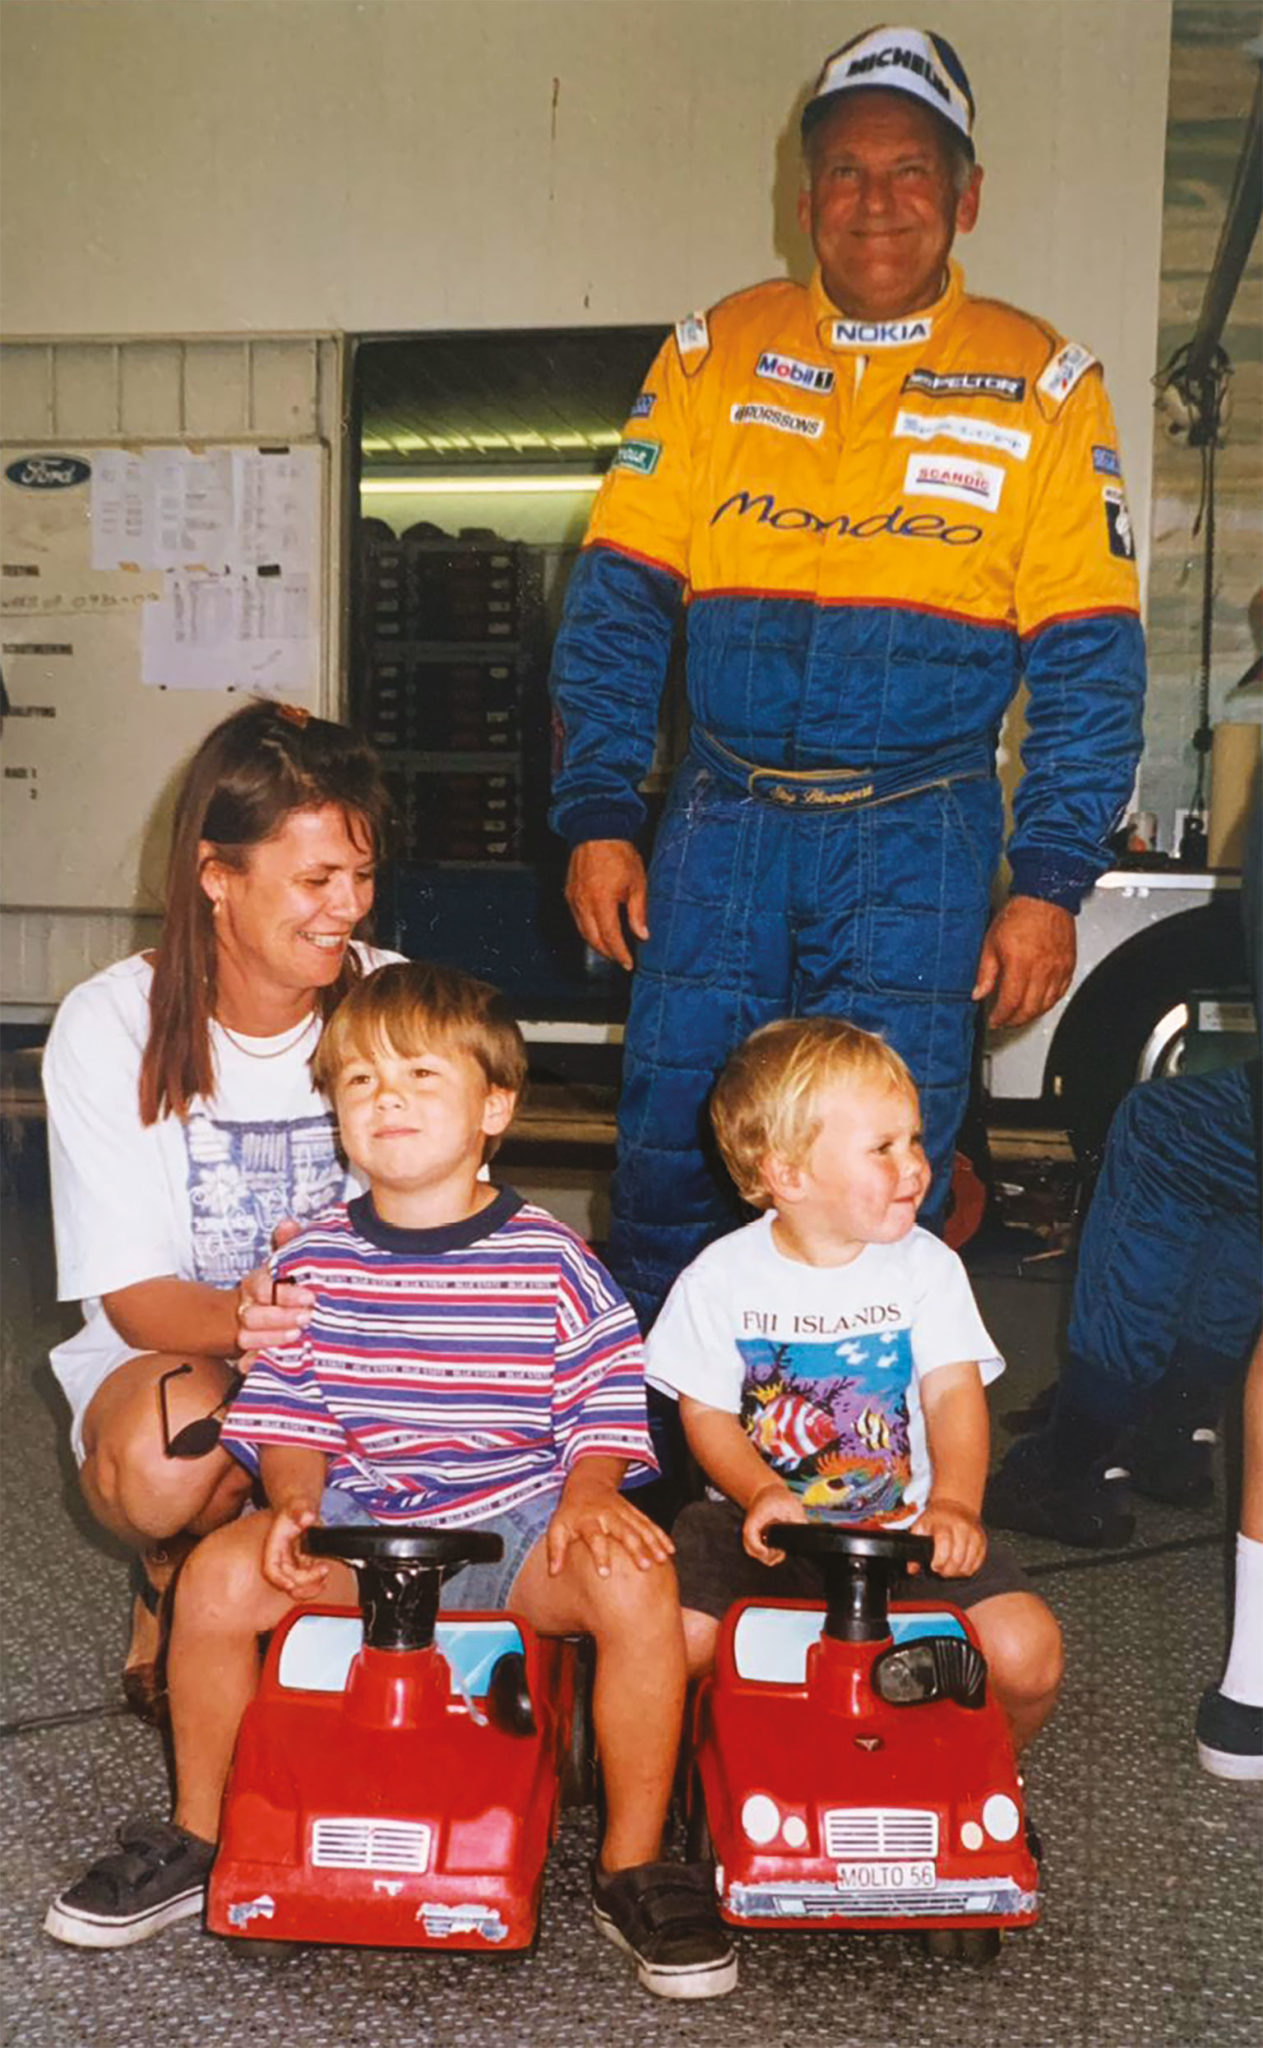 Stig with a young Tom (front, left)